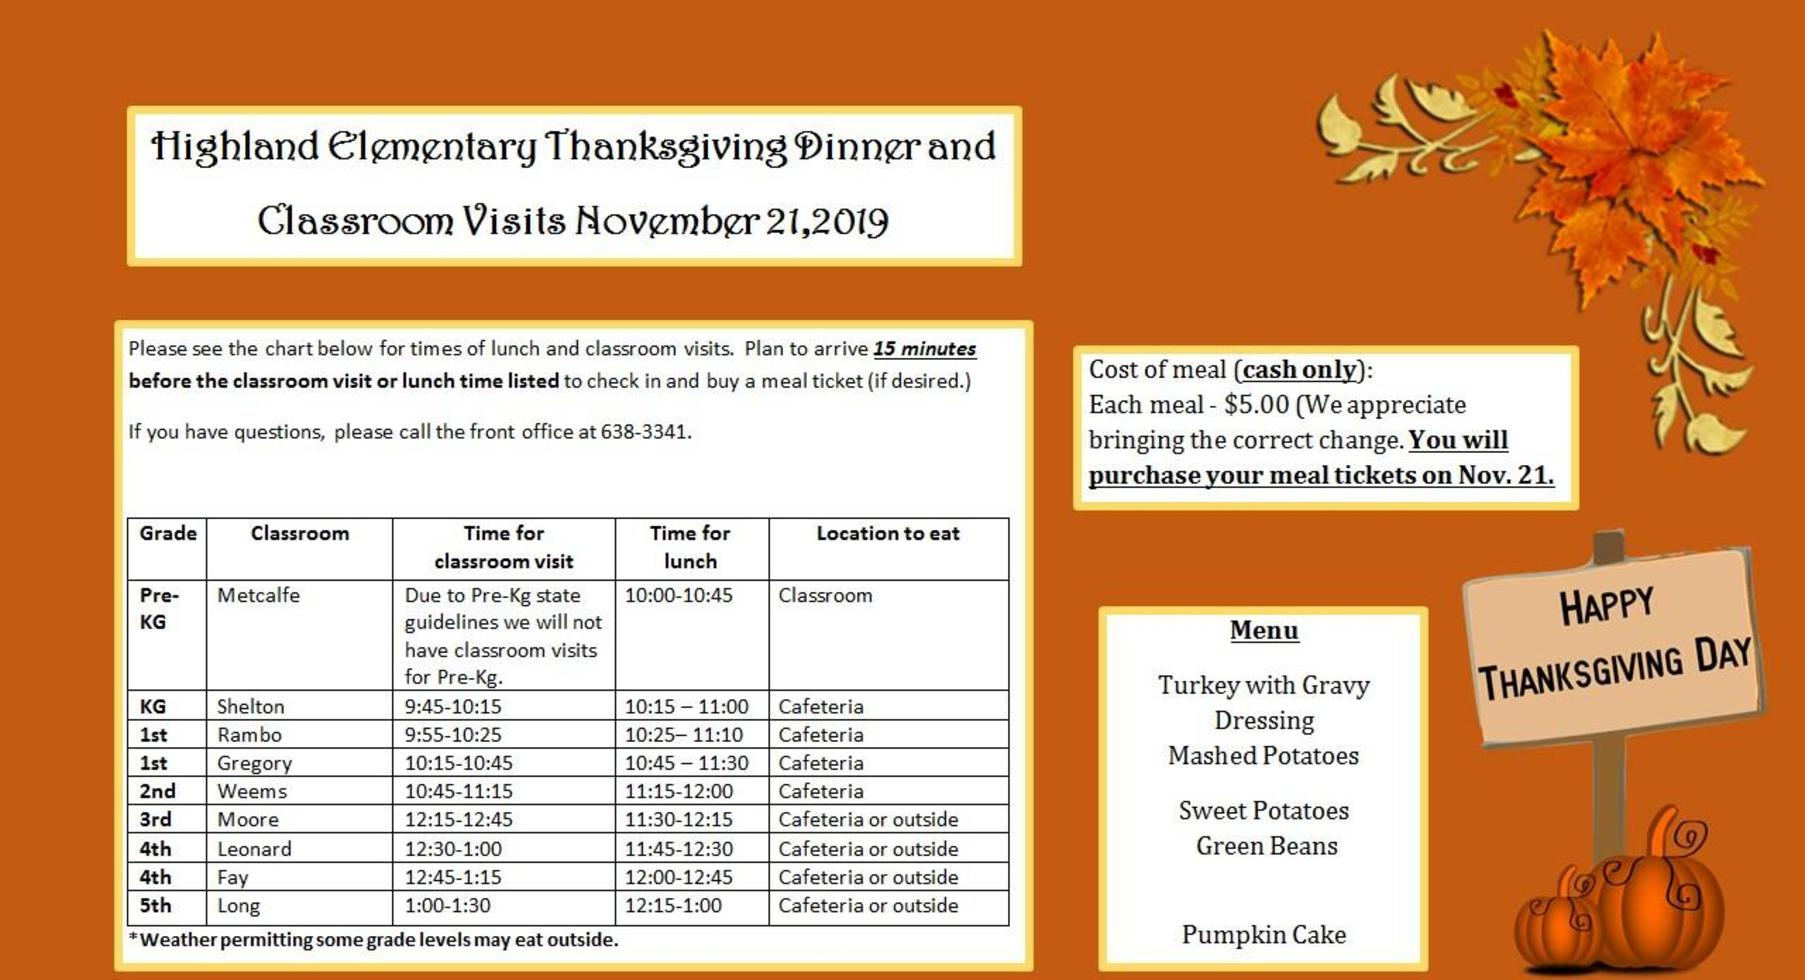 Thanksgiving Family Meal Information